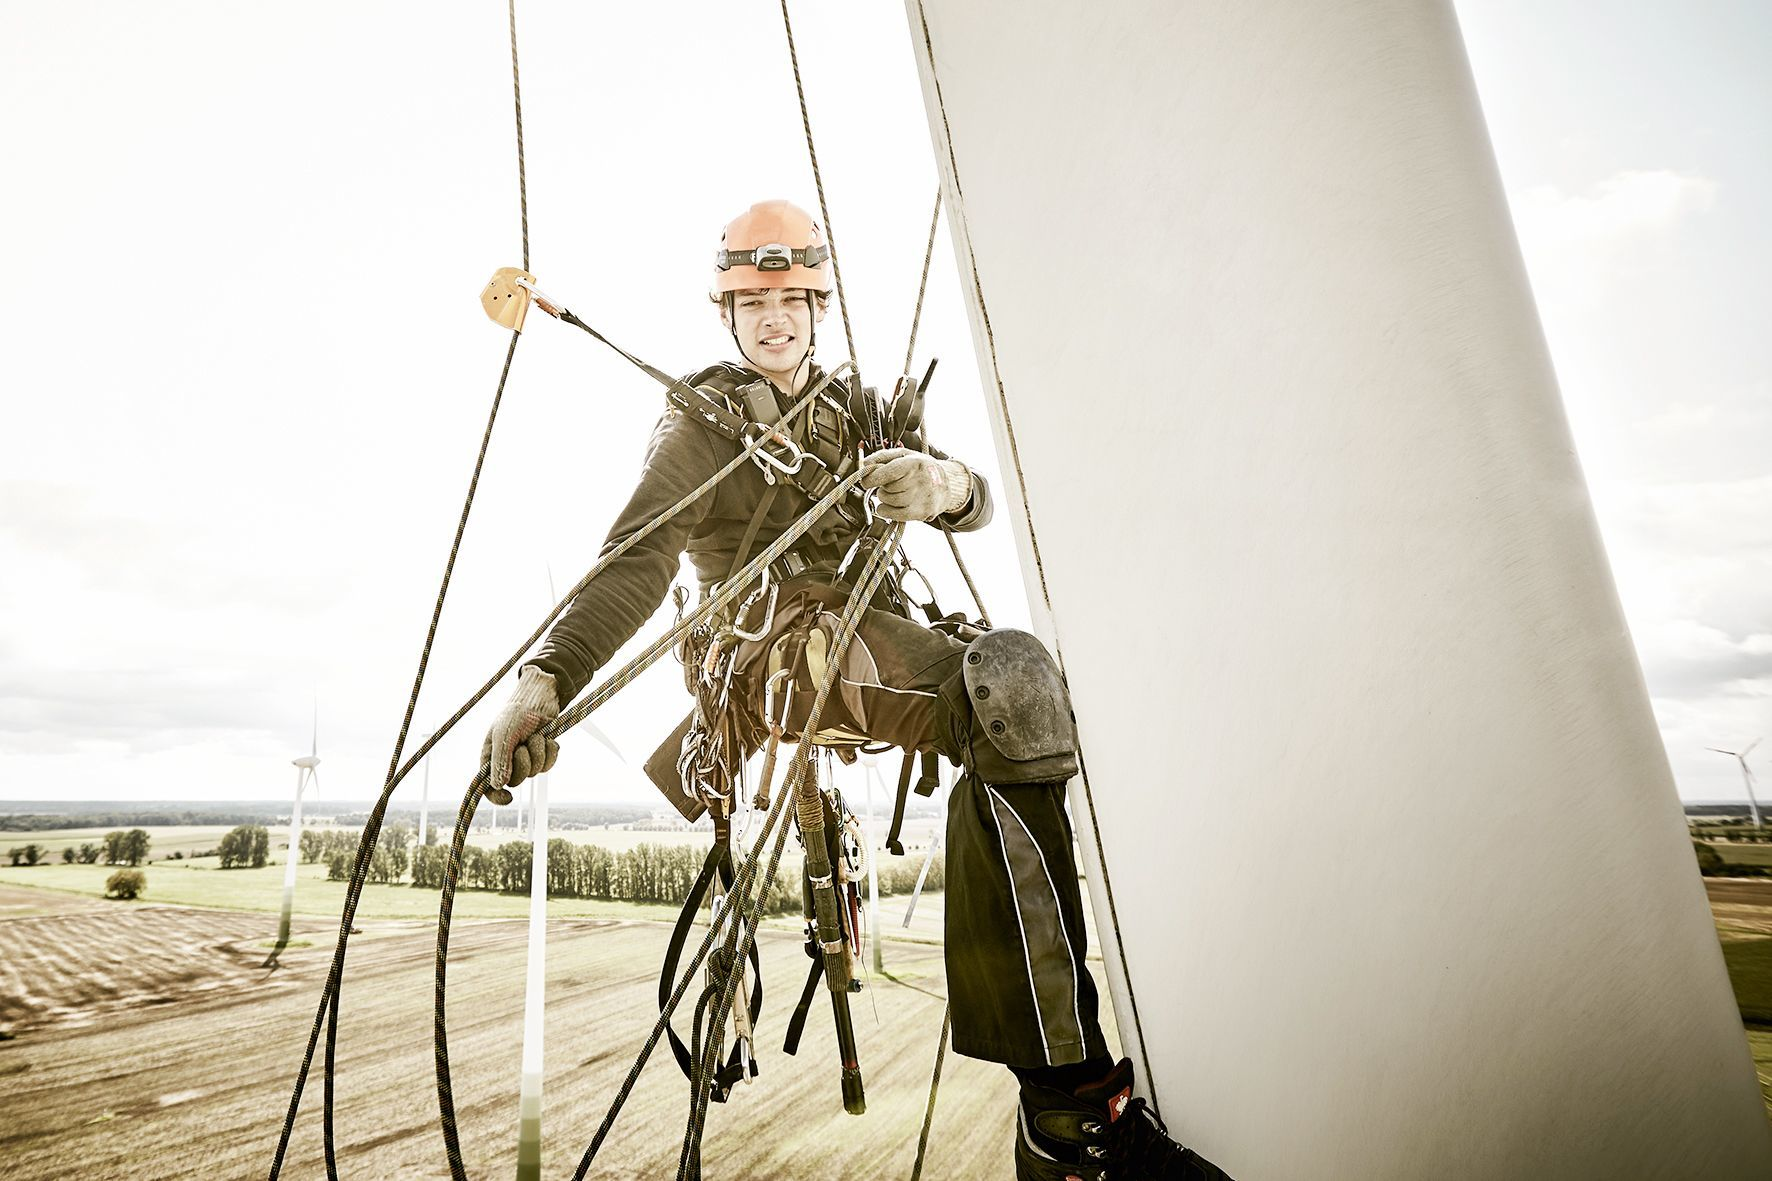 Close-up portrait of an industrial climber hanging in the ropes on a rotor blade, pulling the photographer who is hanging in the ropes beside him closer.